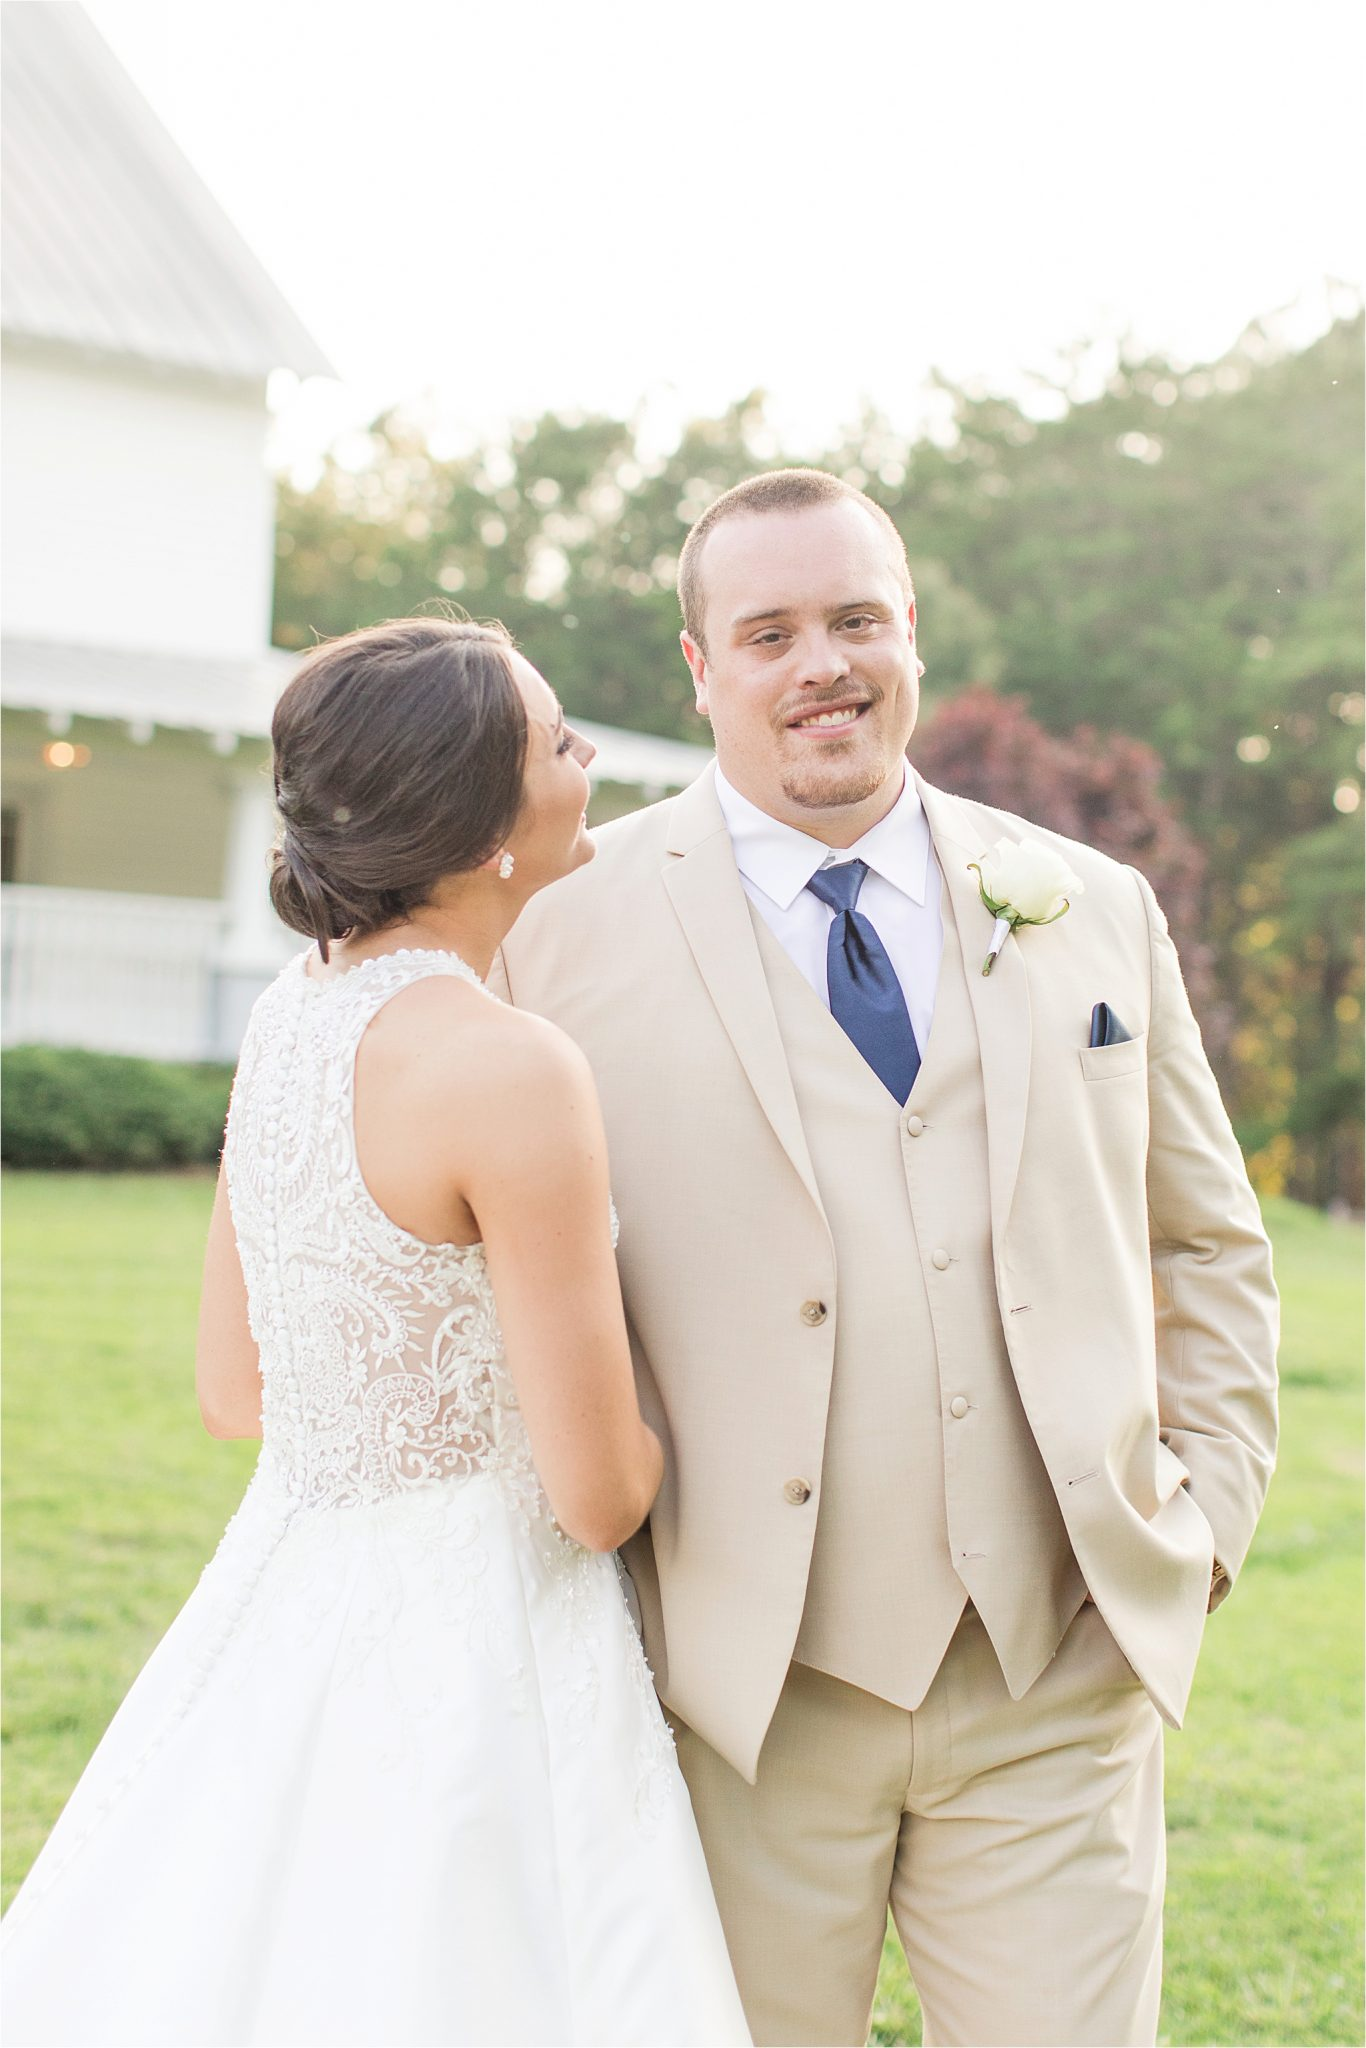 Sonnet House, Birmingham Alabama Wedding Photographery, Courtney + Ben